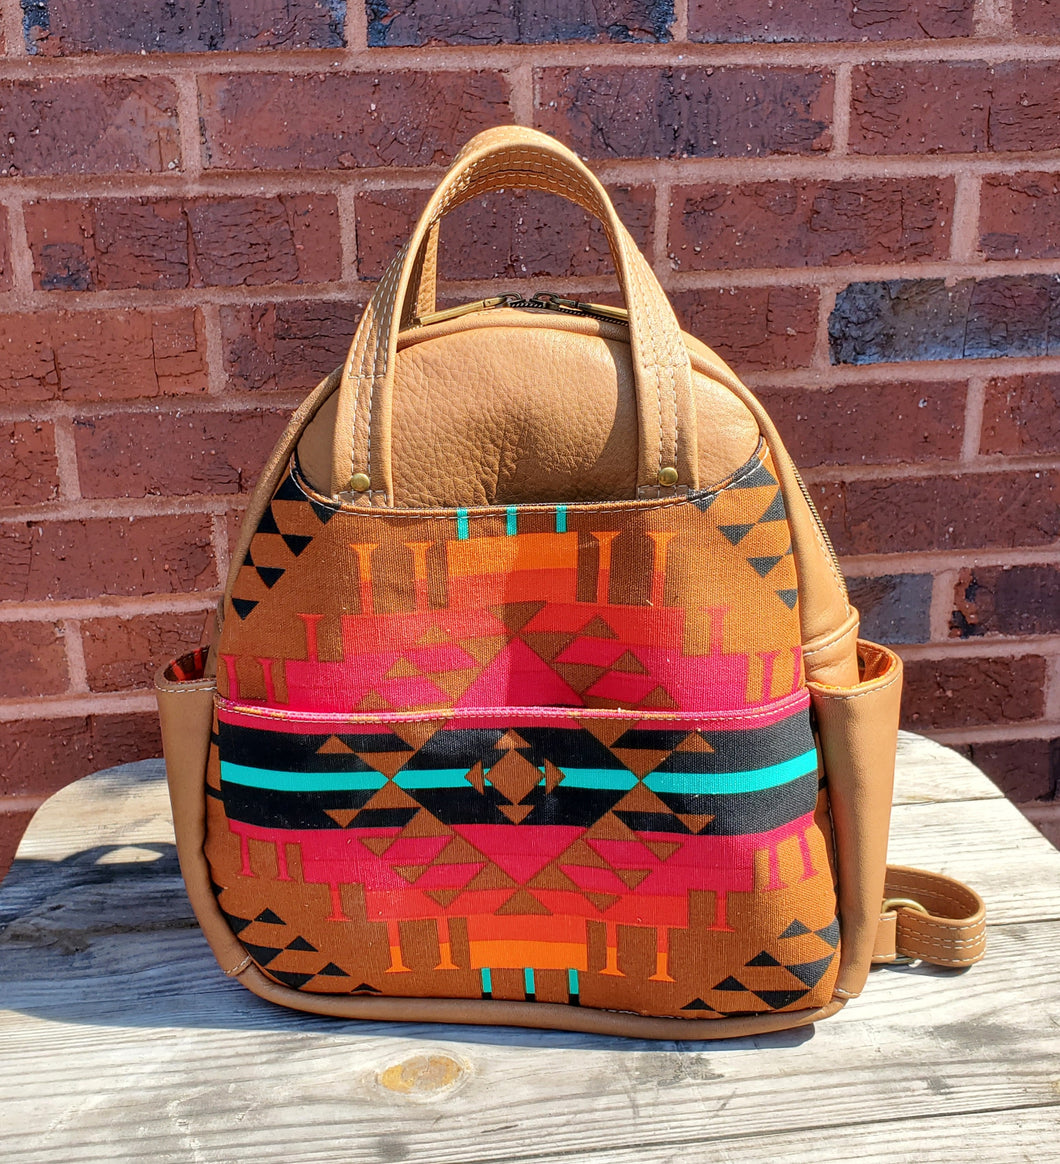 Backpack - Leather with Navajo Theme